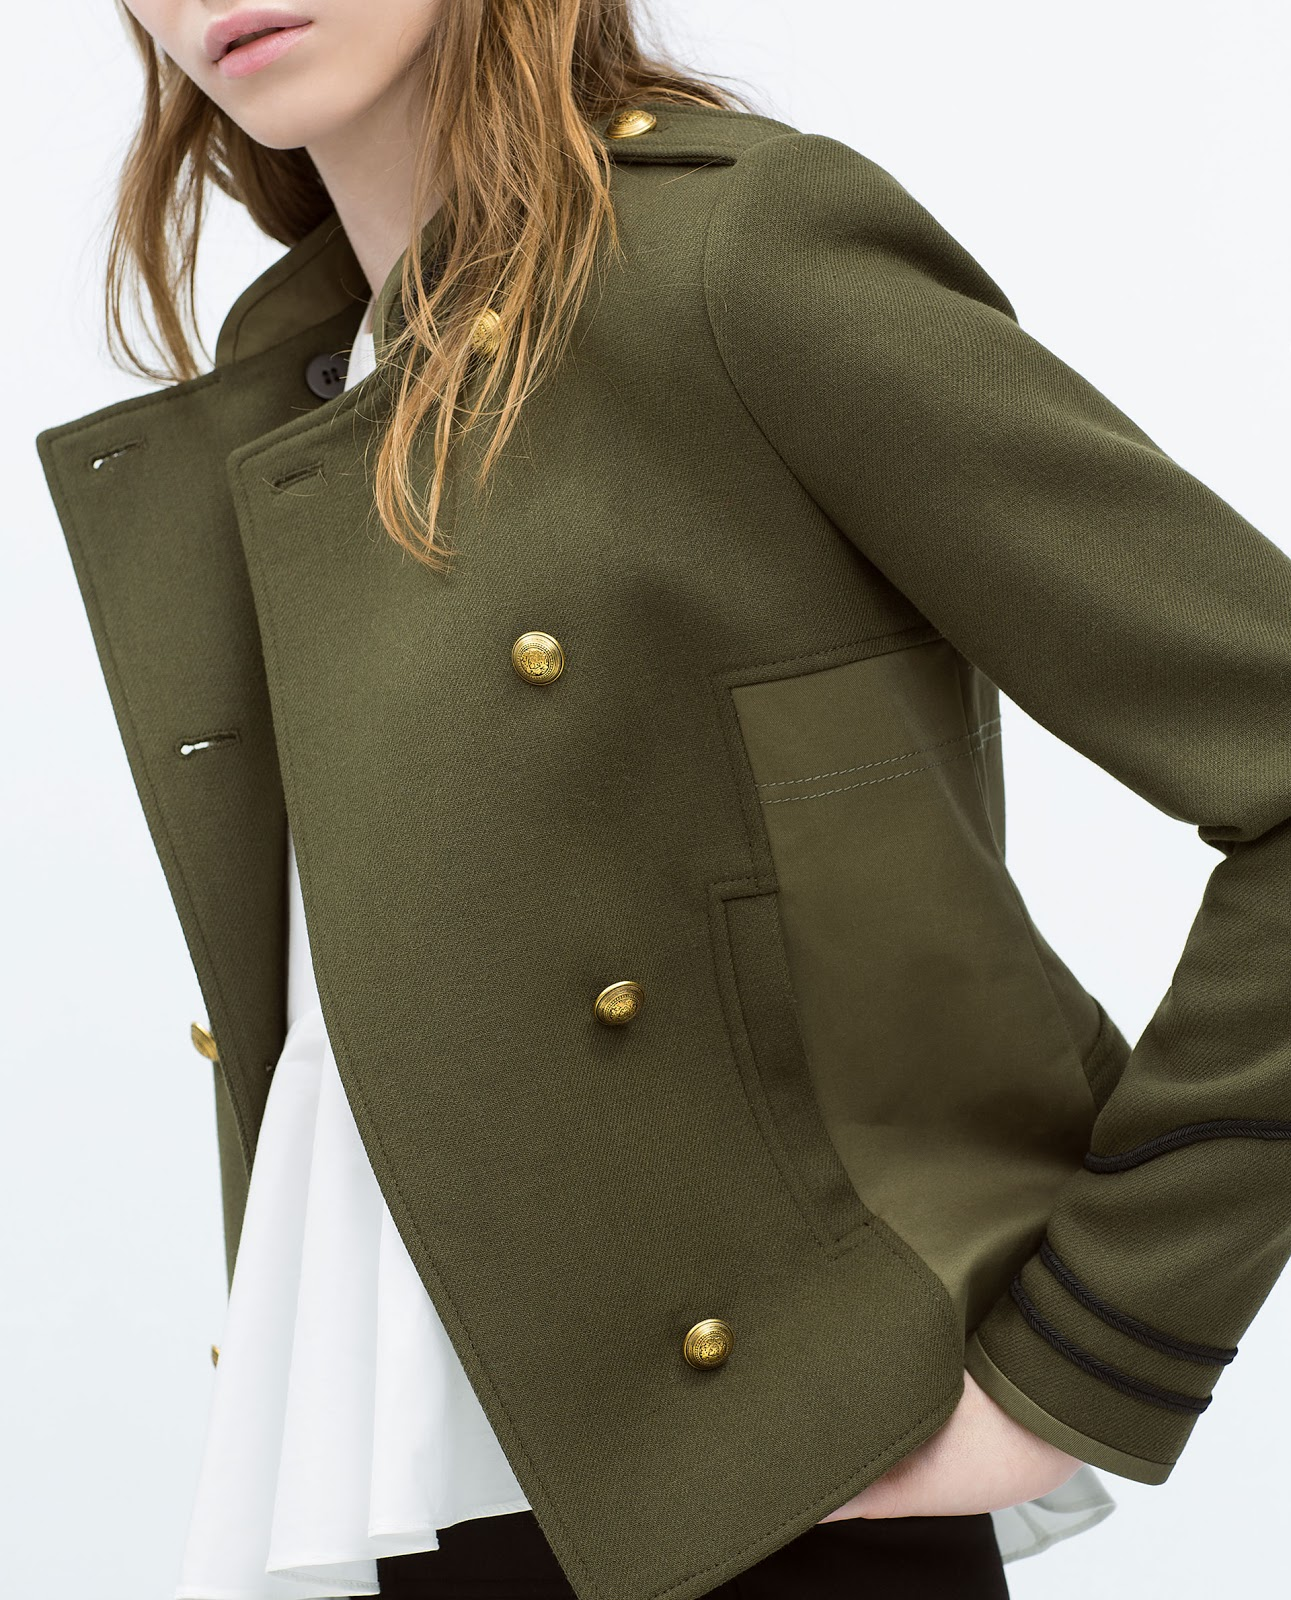 Zara Combined Army Khaki Jacket